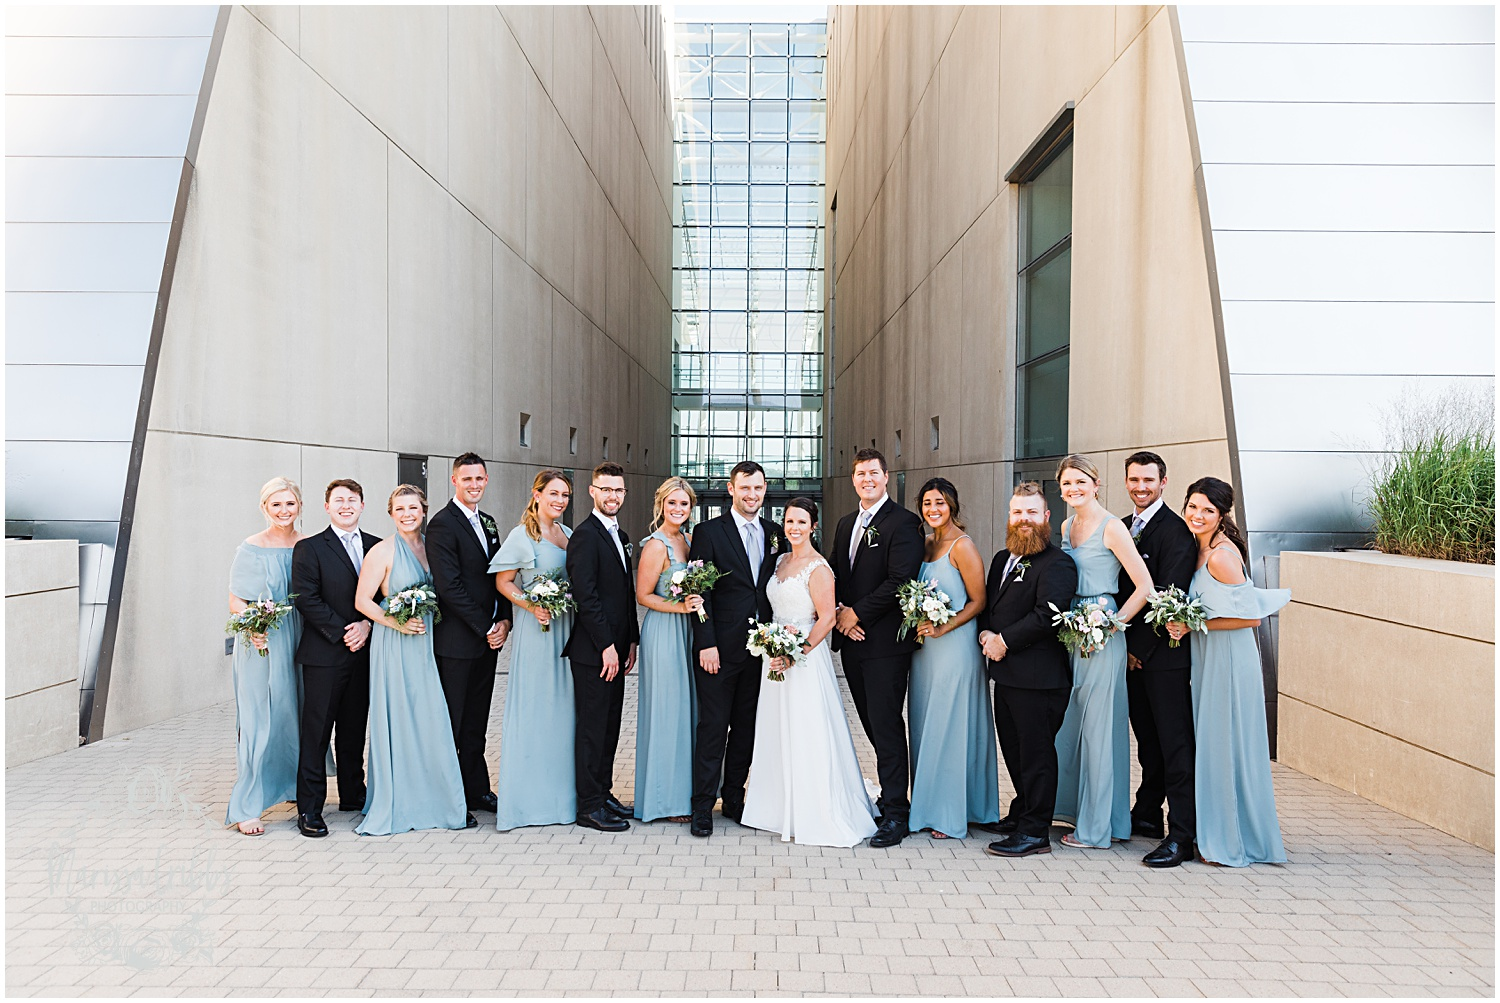 KELLY & MITCH MARRIED BLOG | MARISSA CRIBBS PHOTOGRAPHY | THE EVERLY EVENT SPACE_8880.jpg